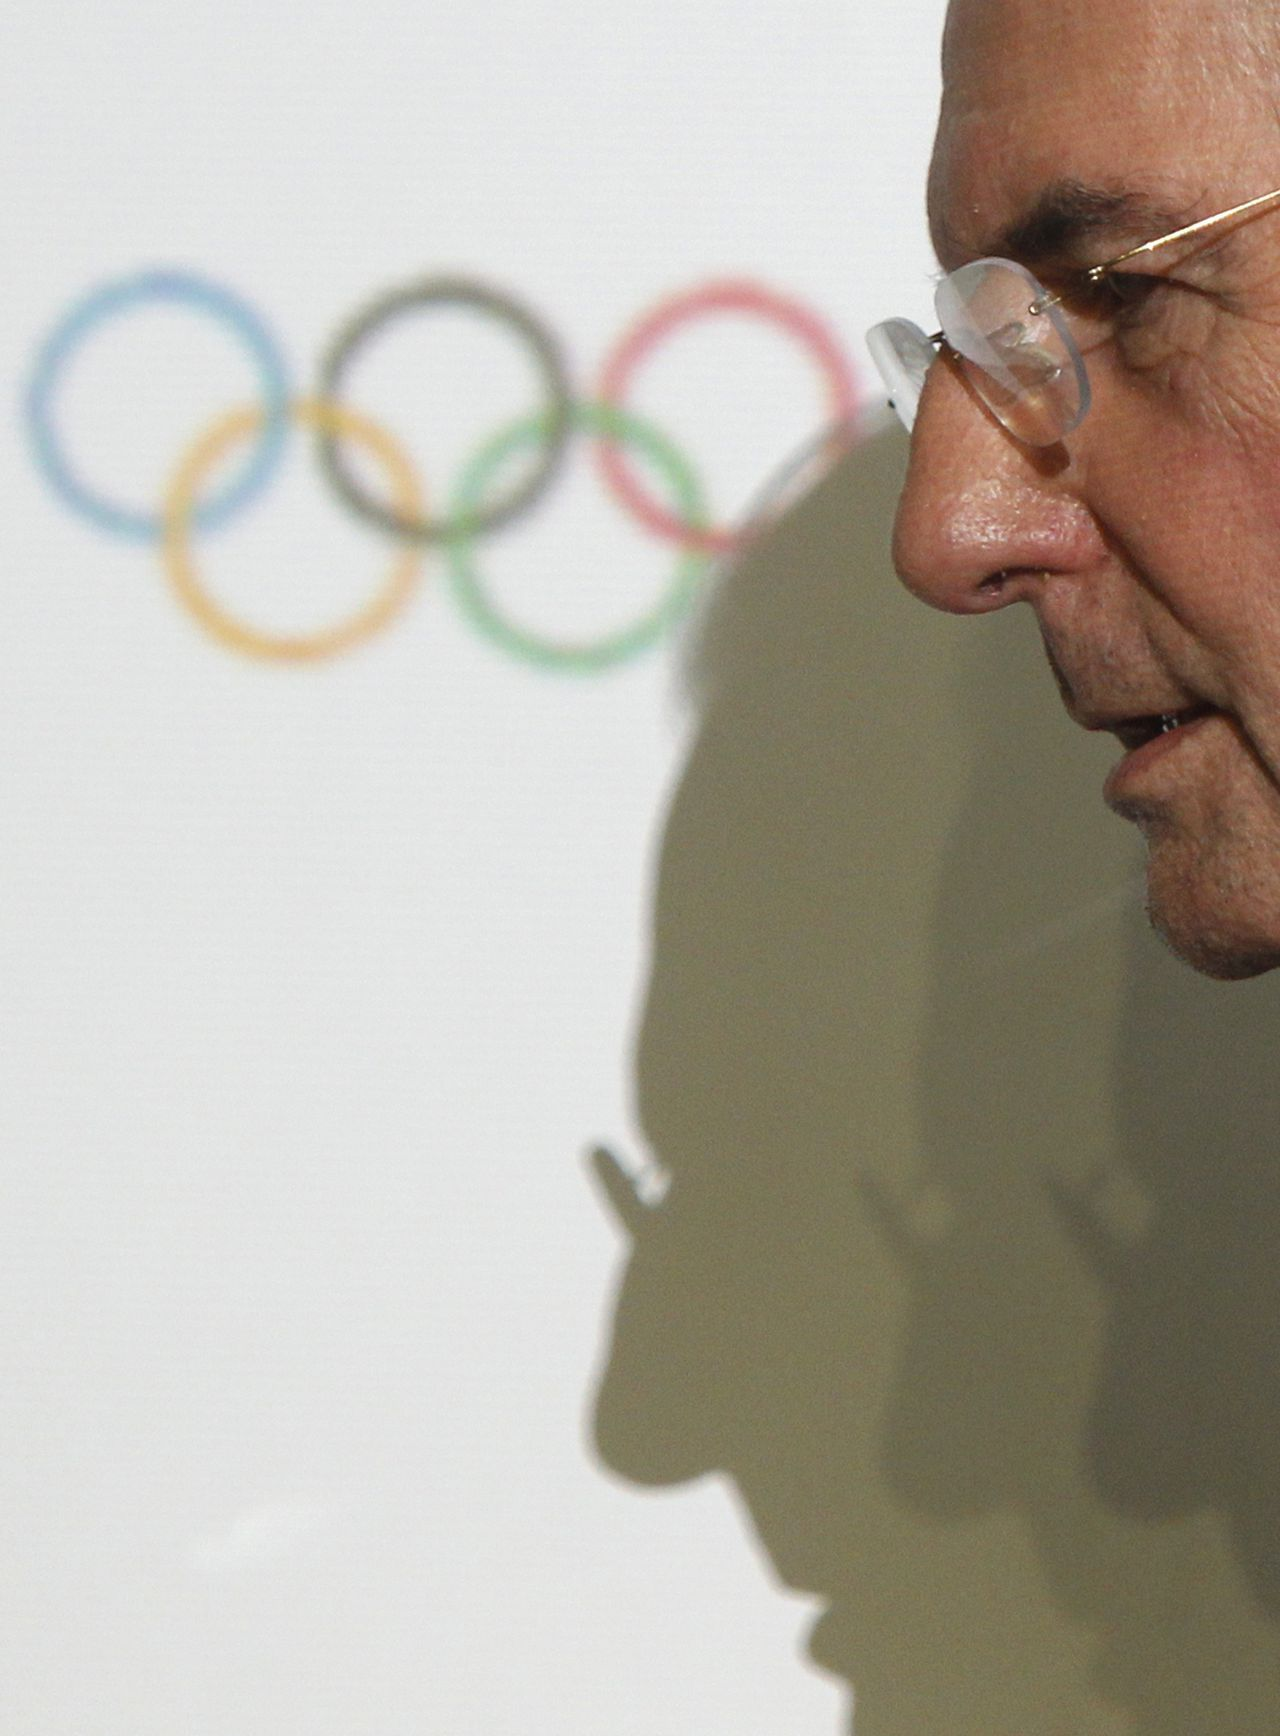 International Olympic Committee (IOC) President Jacques Rogge leaves after a news conference during the IOC Executive Board meeting, part of the annual SportAccord convention, in St. Petersburg, May 31, 2013. REUTERS/Alexander Demianchuk (RUSSIA - Tags: SPORT OLYMPICS)